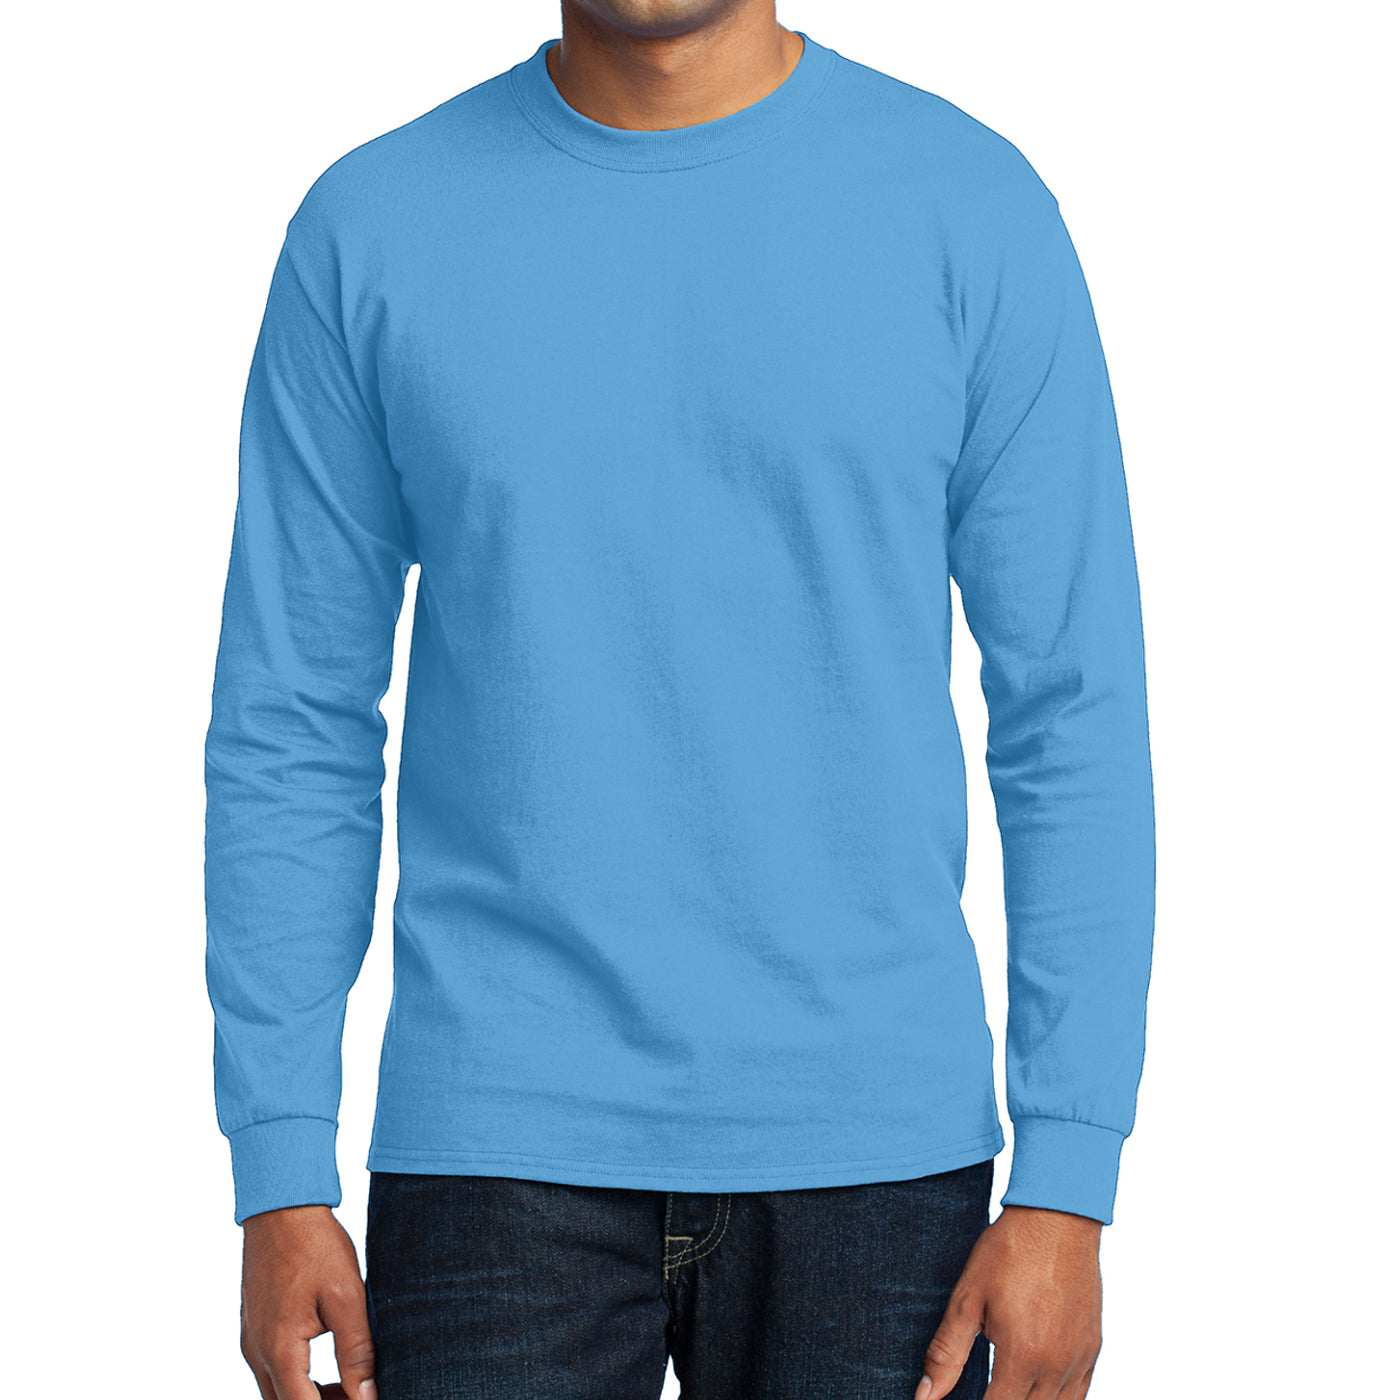 Men's Long Sleeve Core Blend Tee - Aquatic Blue – Front